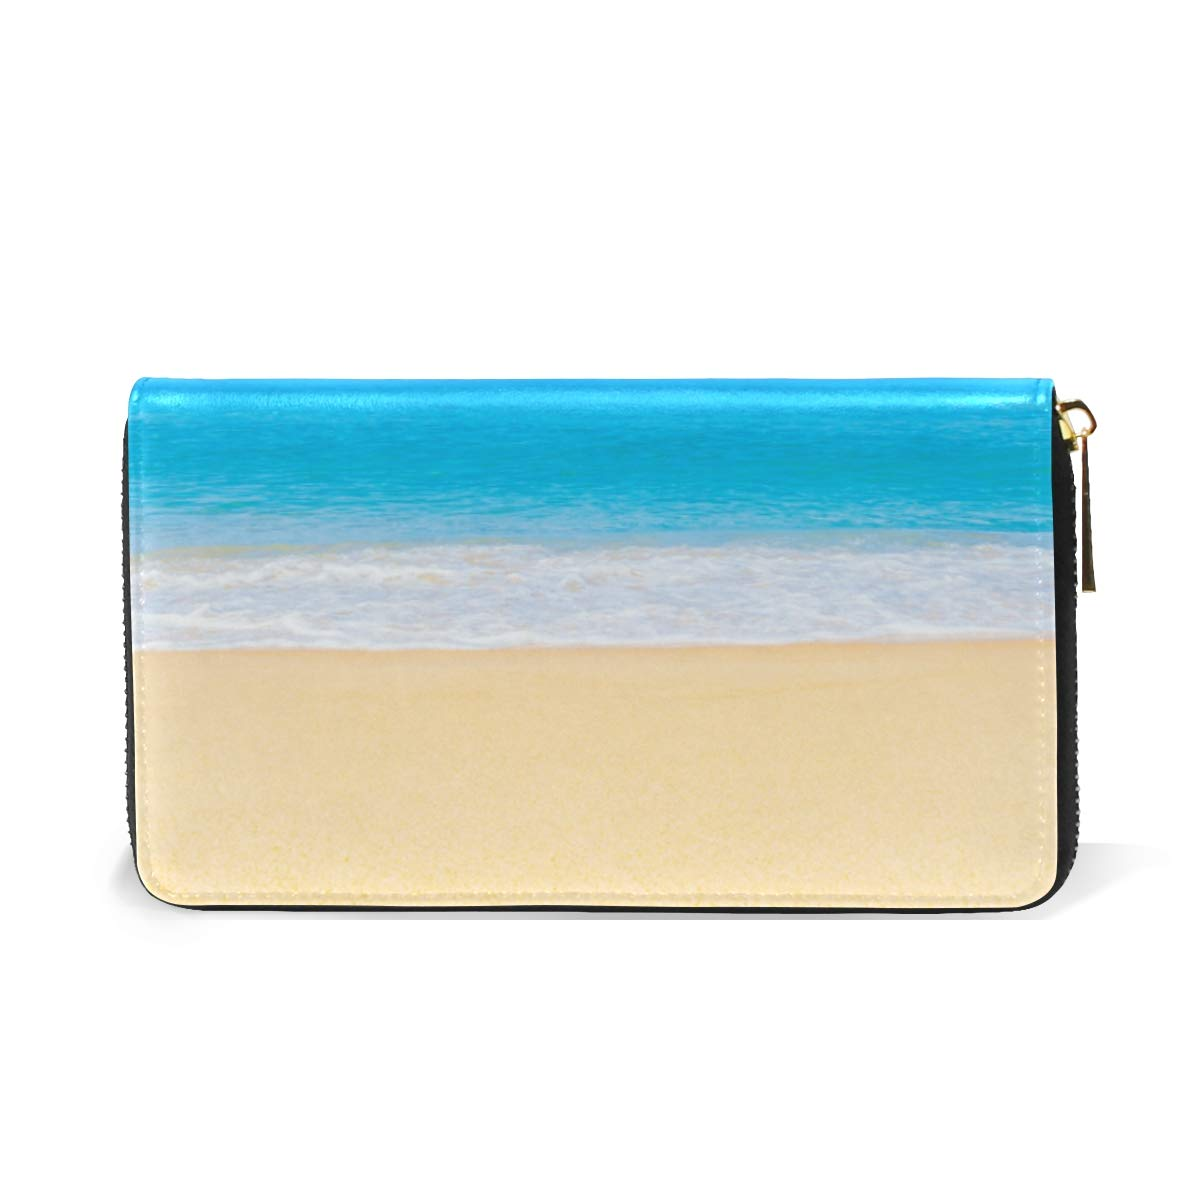 Women Wallet Coin Purse Phone Clutch Pouch Cash Bag,Beach Sky Landscape Female Girl Card Change Holder Organizer Storage Key Hold Elegant Handbag Gift